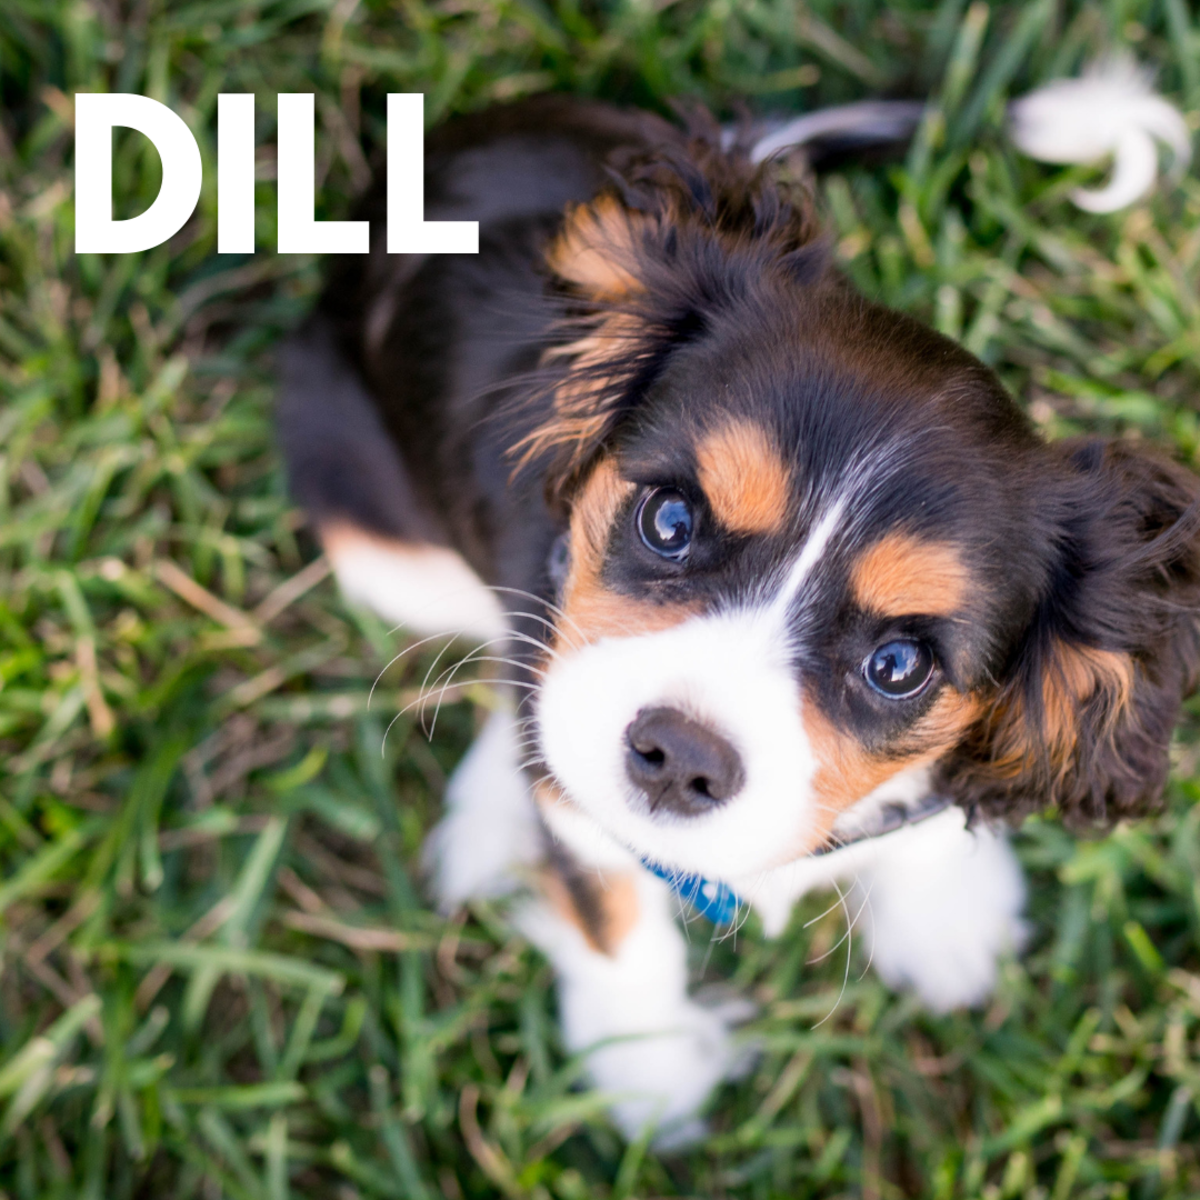 Is she a Dill?